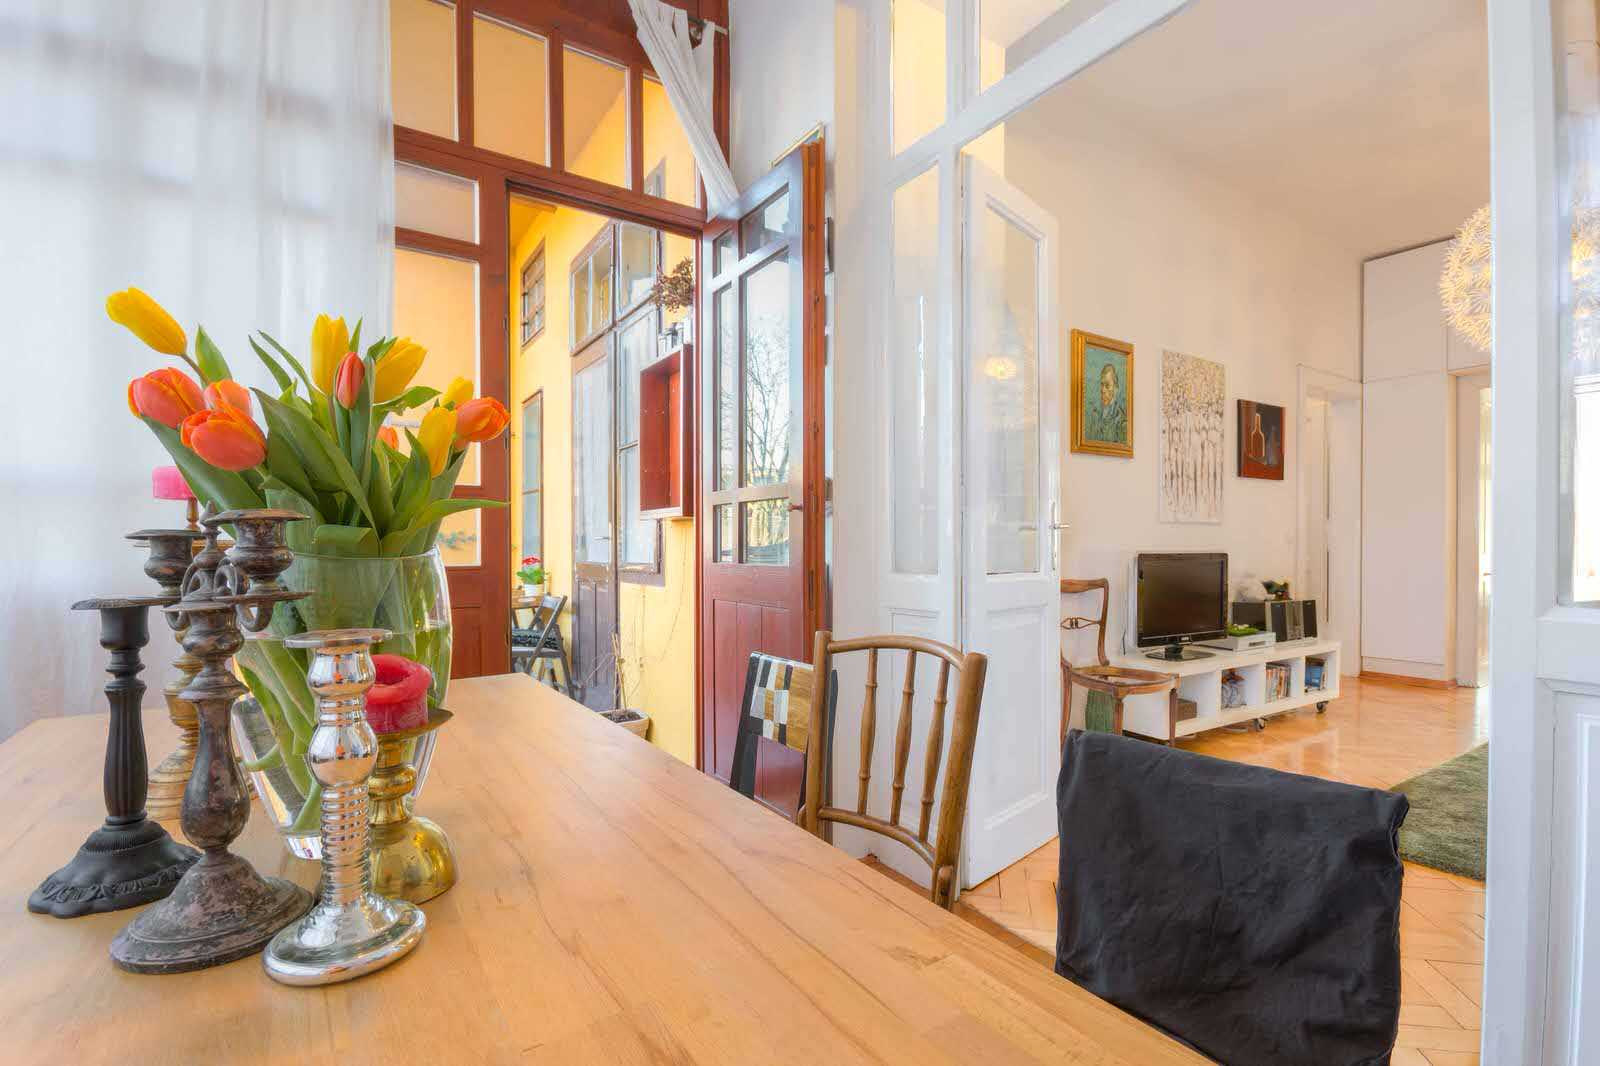 The dining room can accommodate up to eight persons for dinner so there's ample room for everyone staying in the apartment.